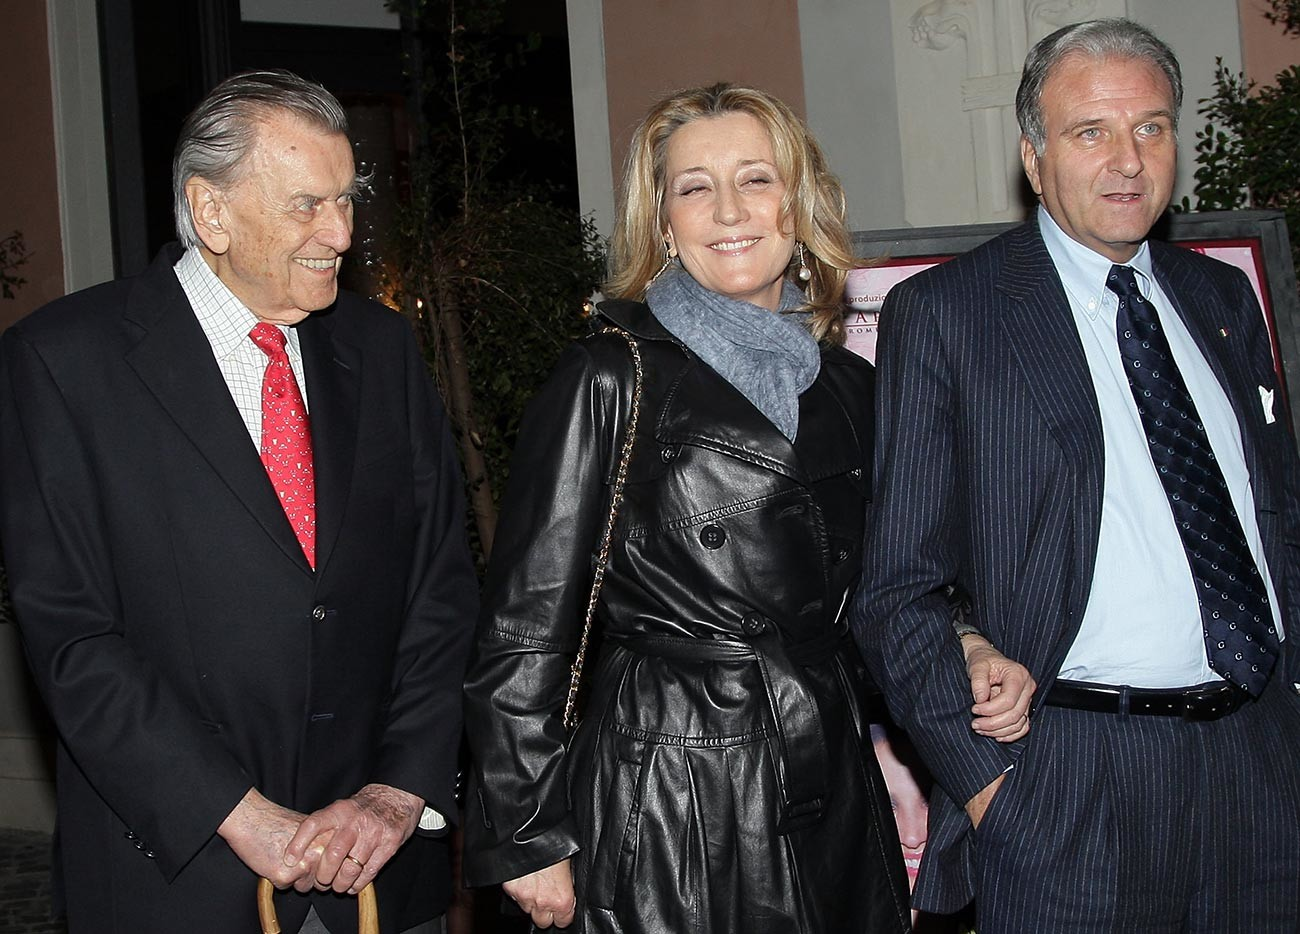 Nicola Romanoff, Natalia Romanoff and senator Giuseppe Consolo attend 'Smetti di piangere Penelope' theatre performance premiere at the Ambra Jovinelli theatre